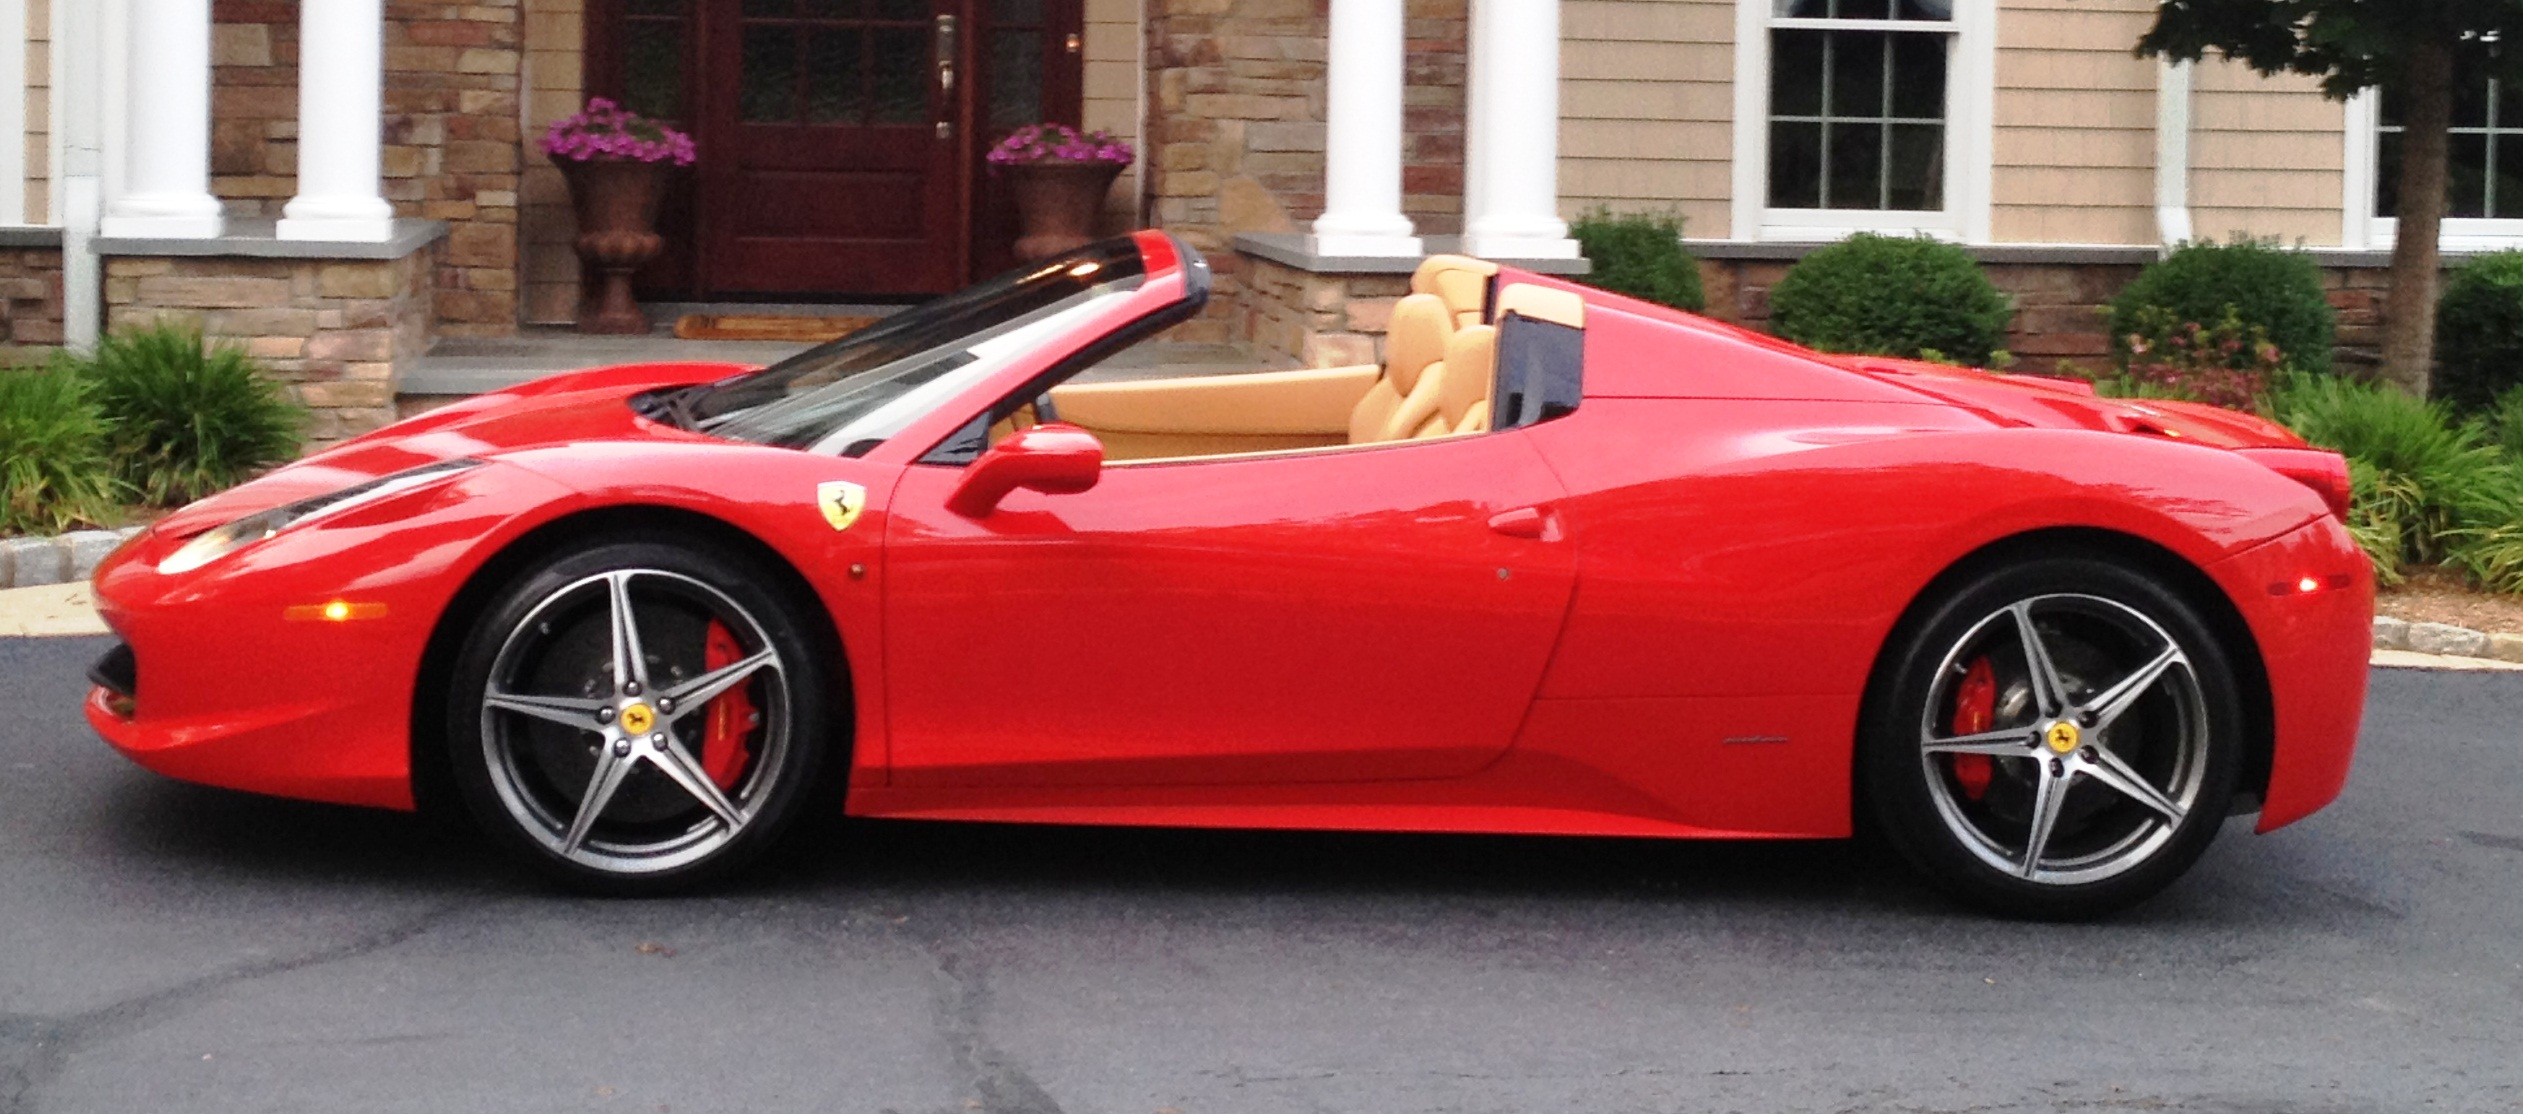 » red 458 spider Exotic Car Search  Ferrari 458 Spider Red